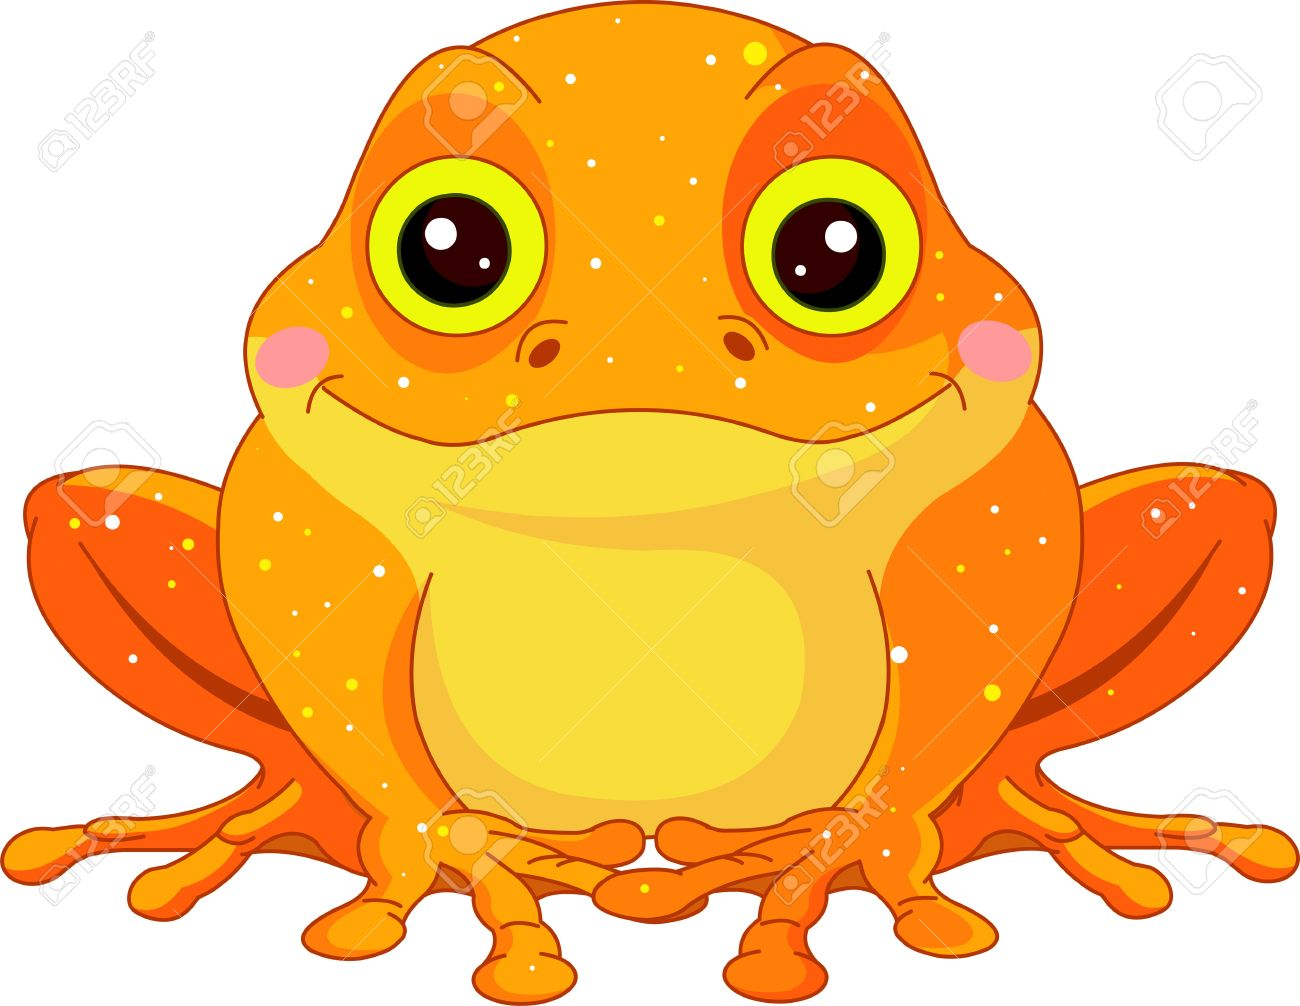 fun zoo illustration of cute golden toad royalty free cliparts